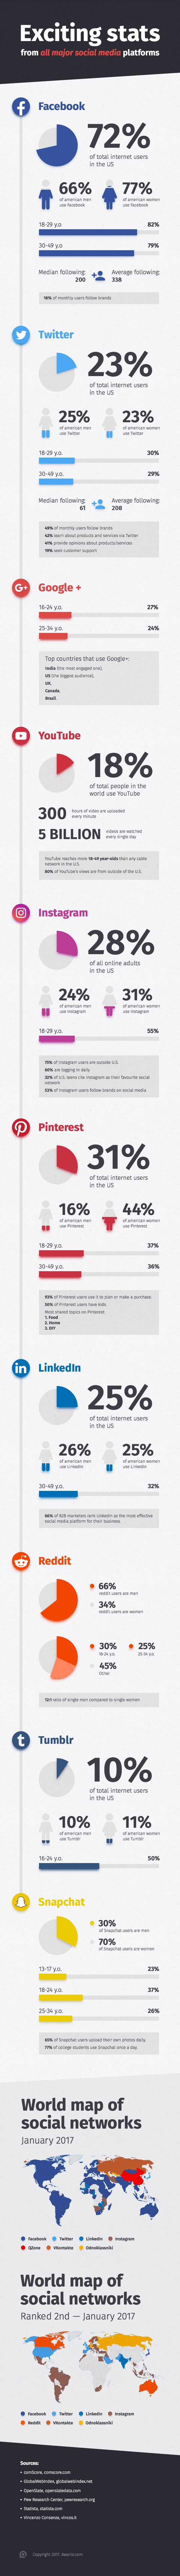 Social Media Stats You Should Know (Infographic)